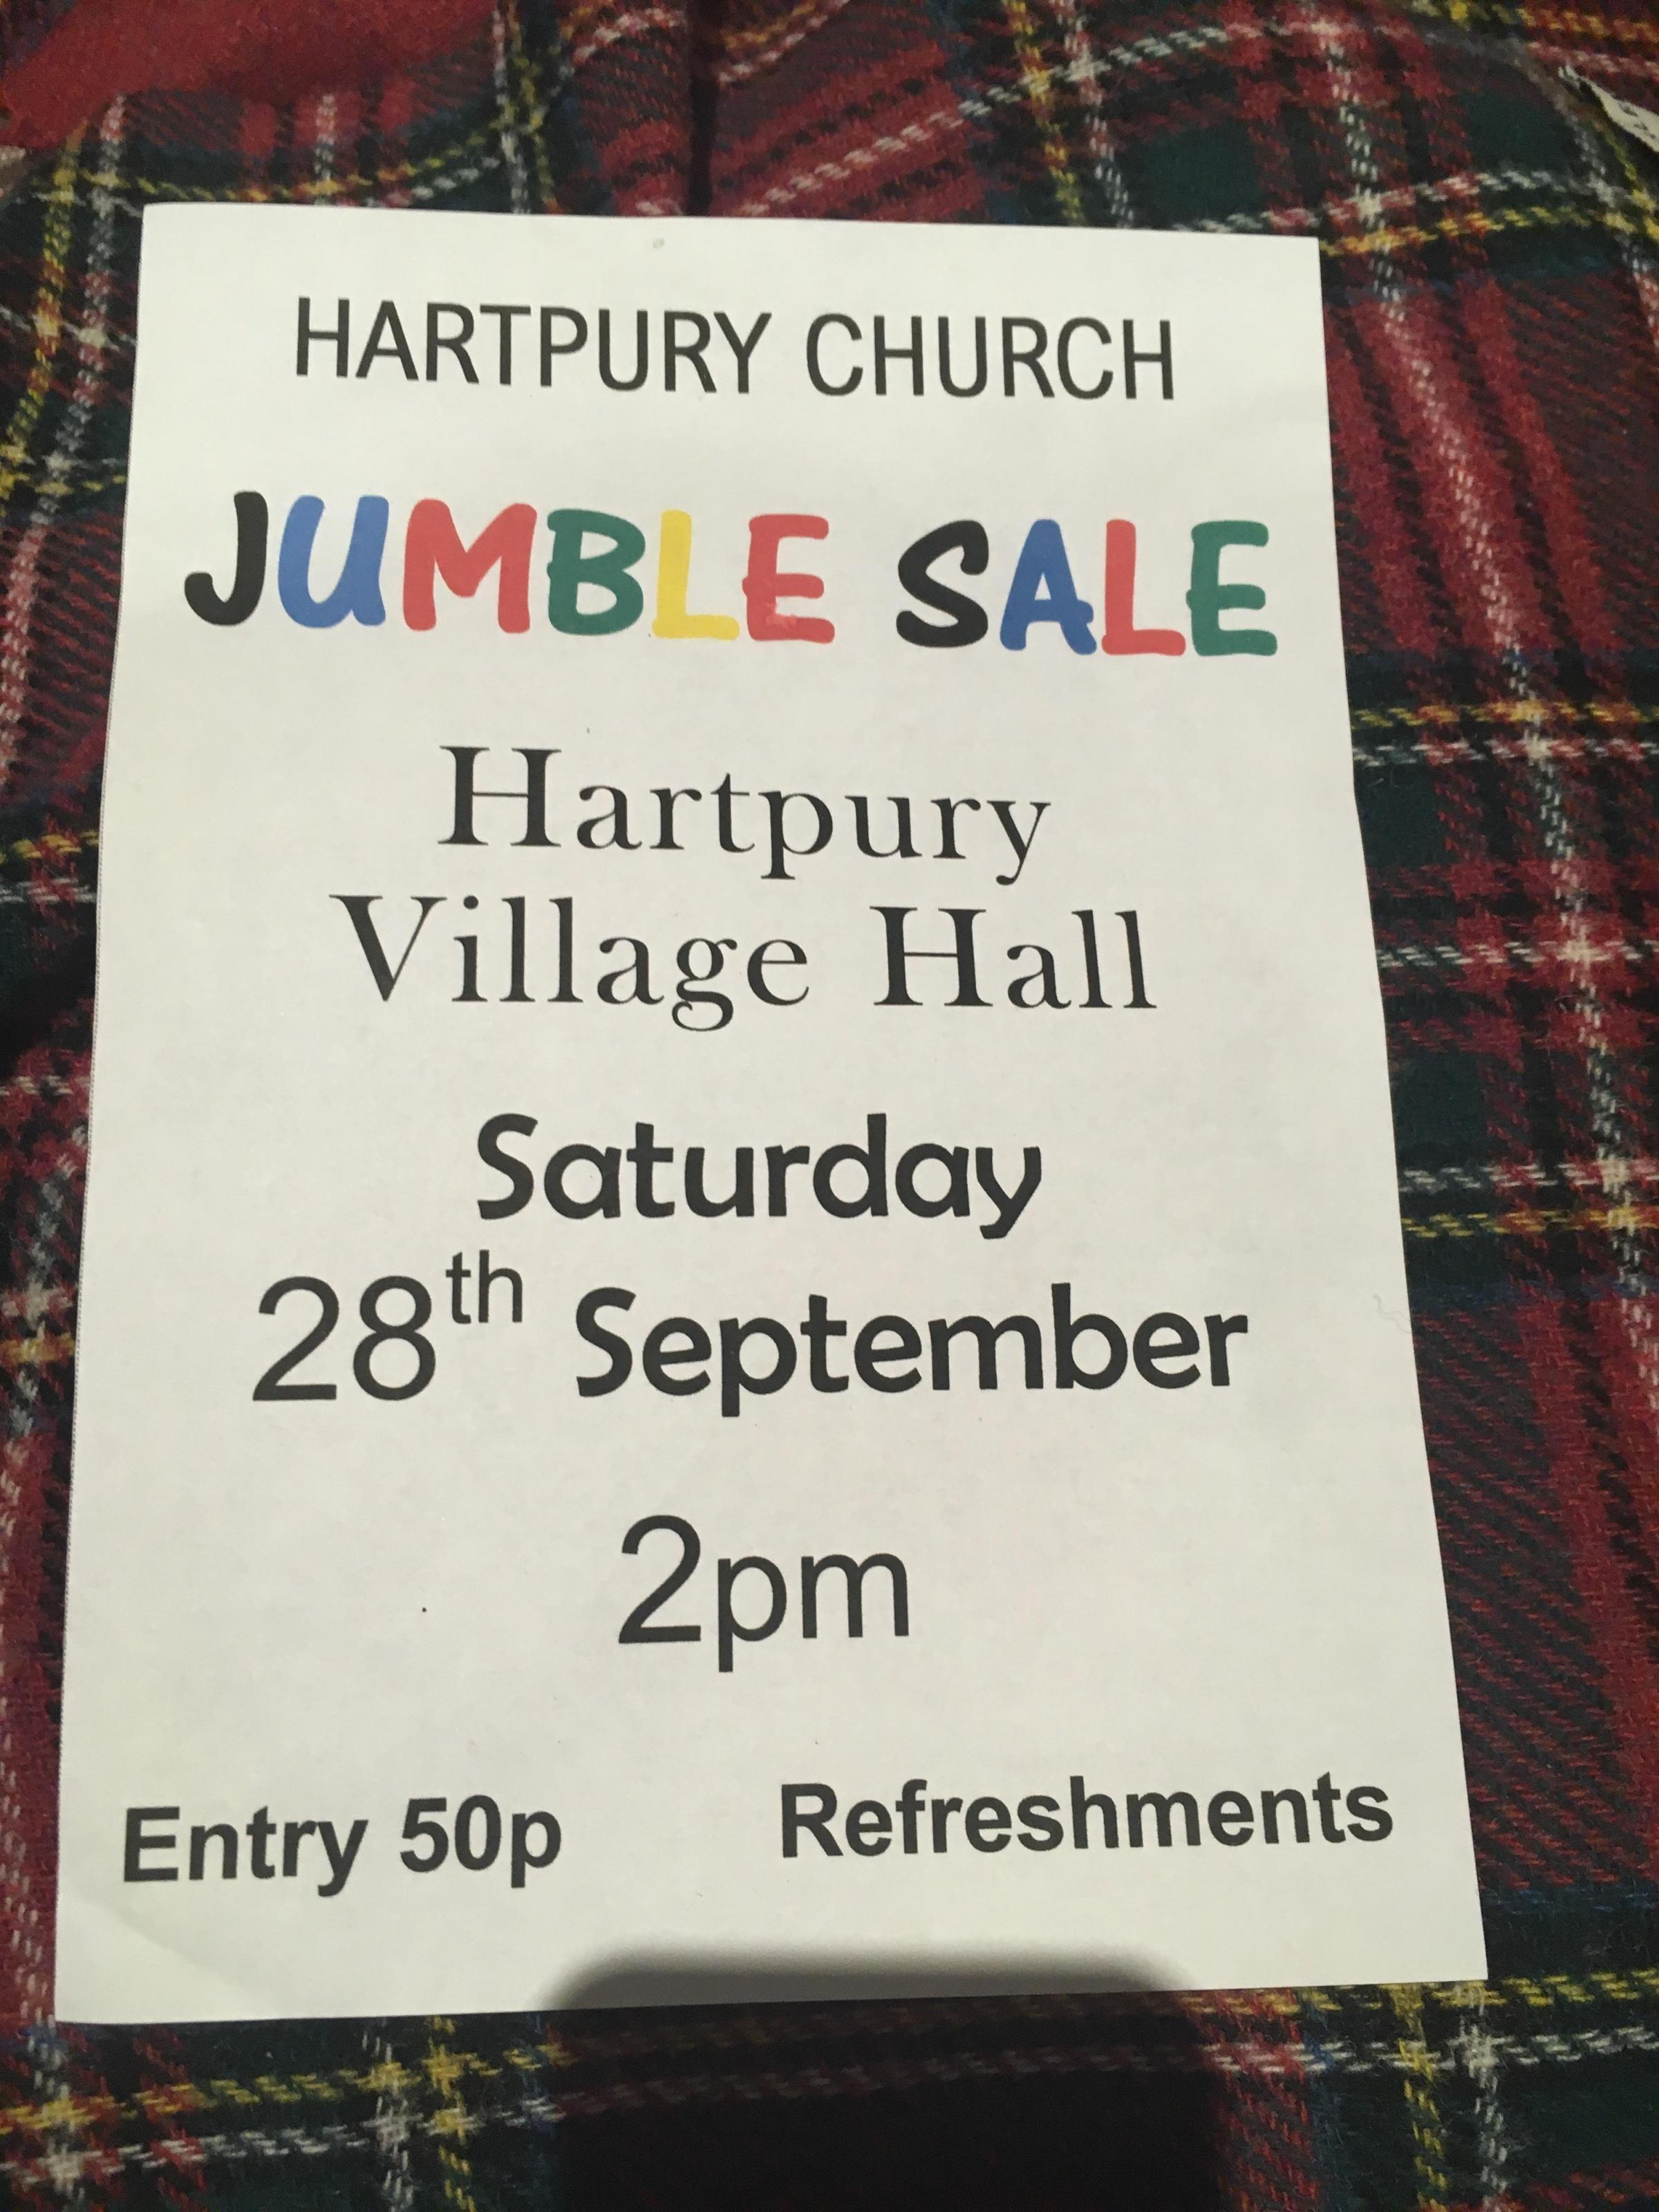 Hartpury church jumble sale